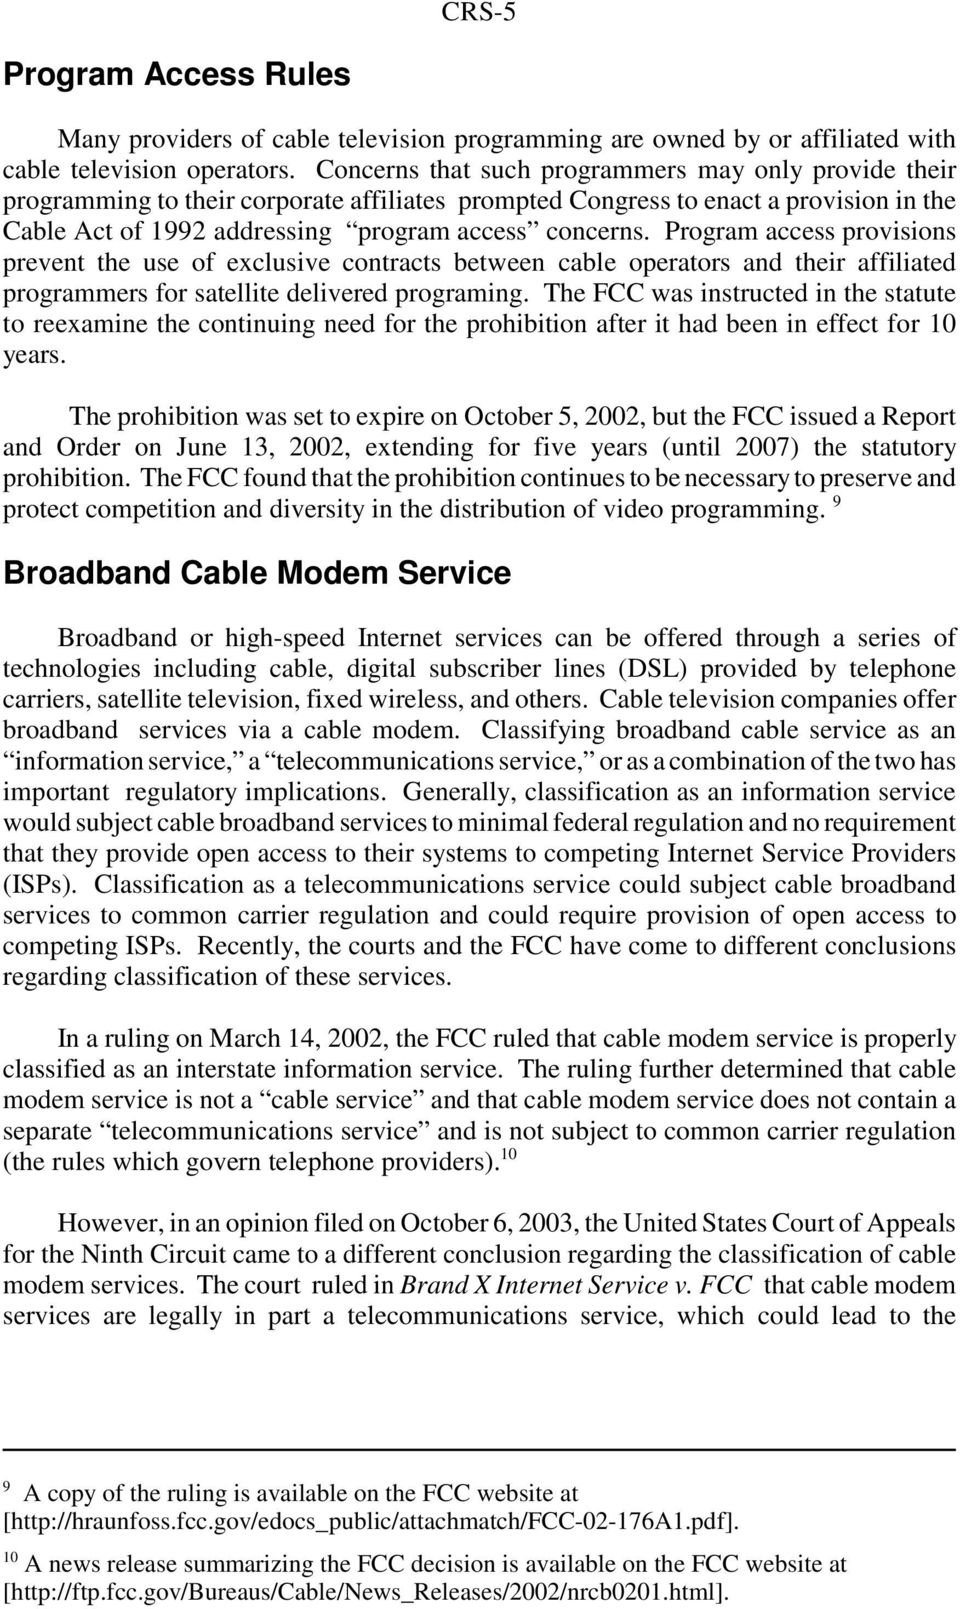 Program access provisions prevent the use of exclusive contracts between cable operators and their affiliated programmers for satellite delivered programing.